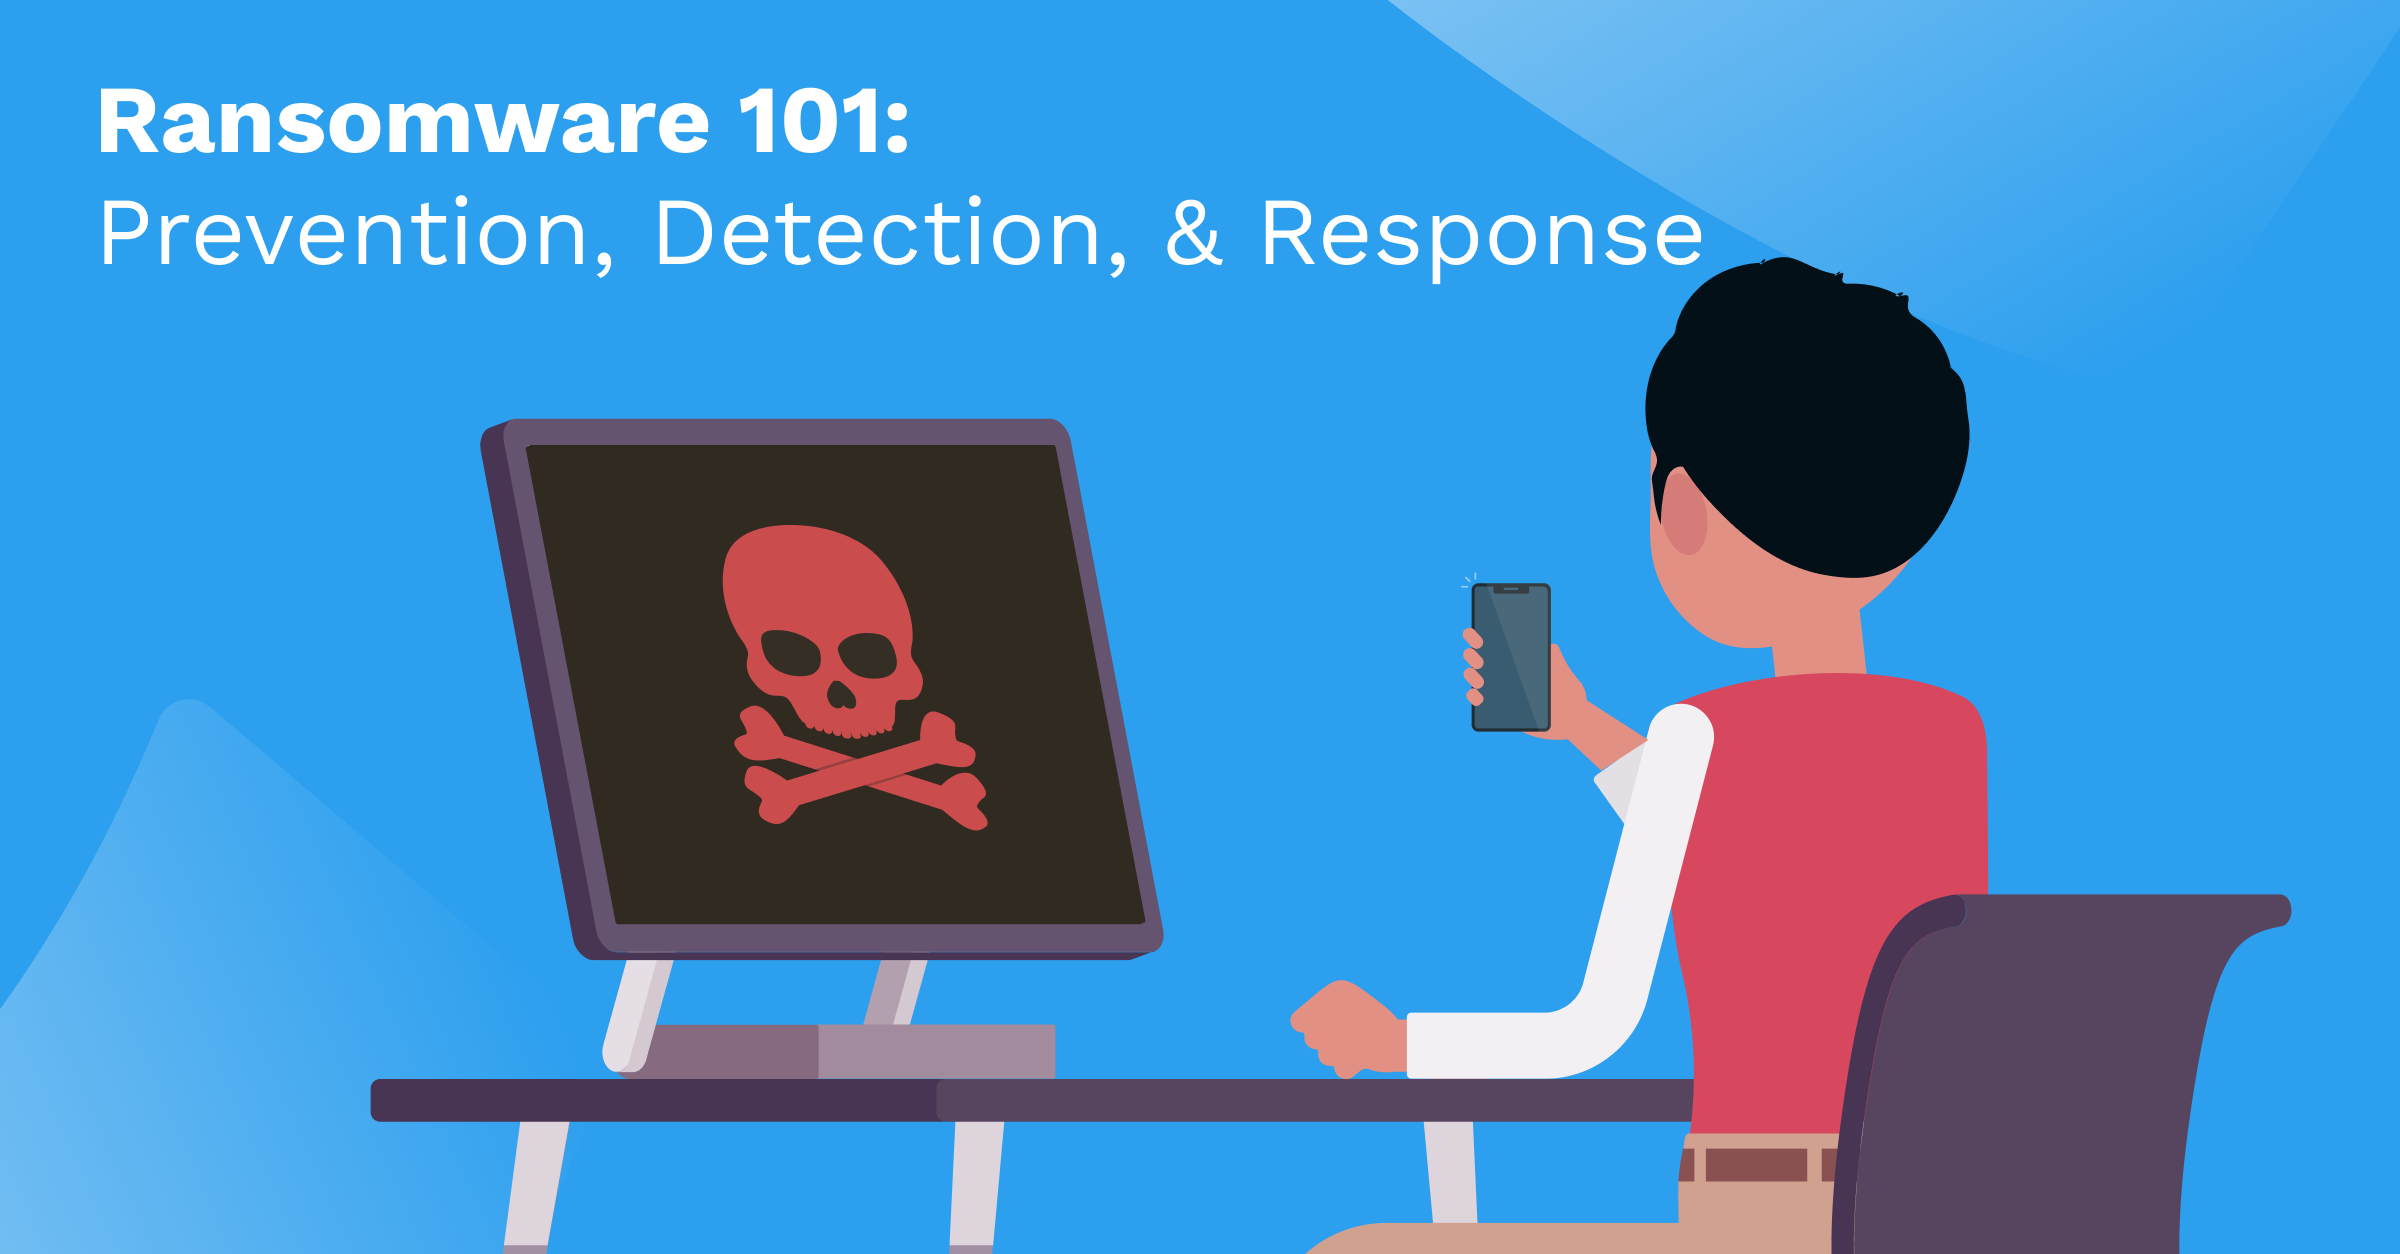 Ransomware 101: How to Prevent, Detect, and Respond to a ransomware attack